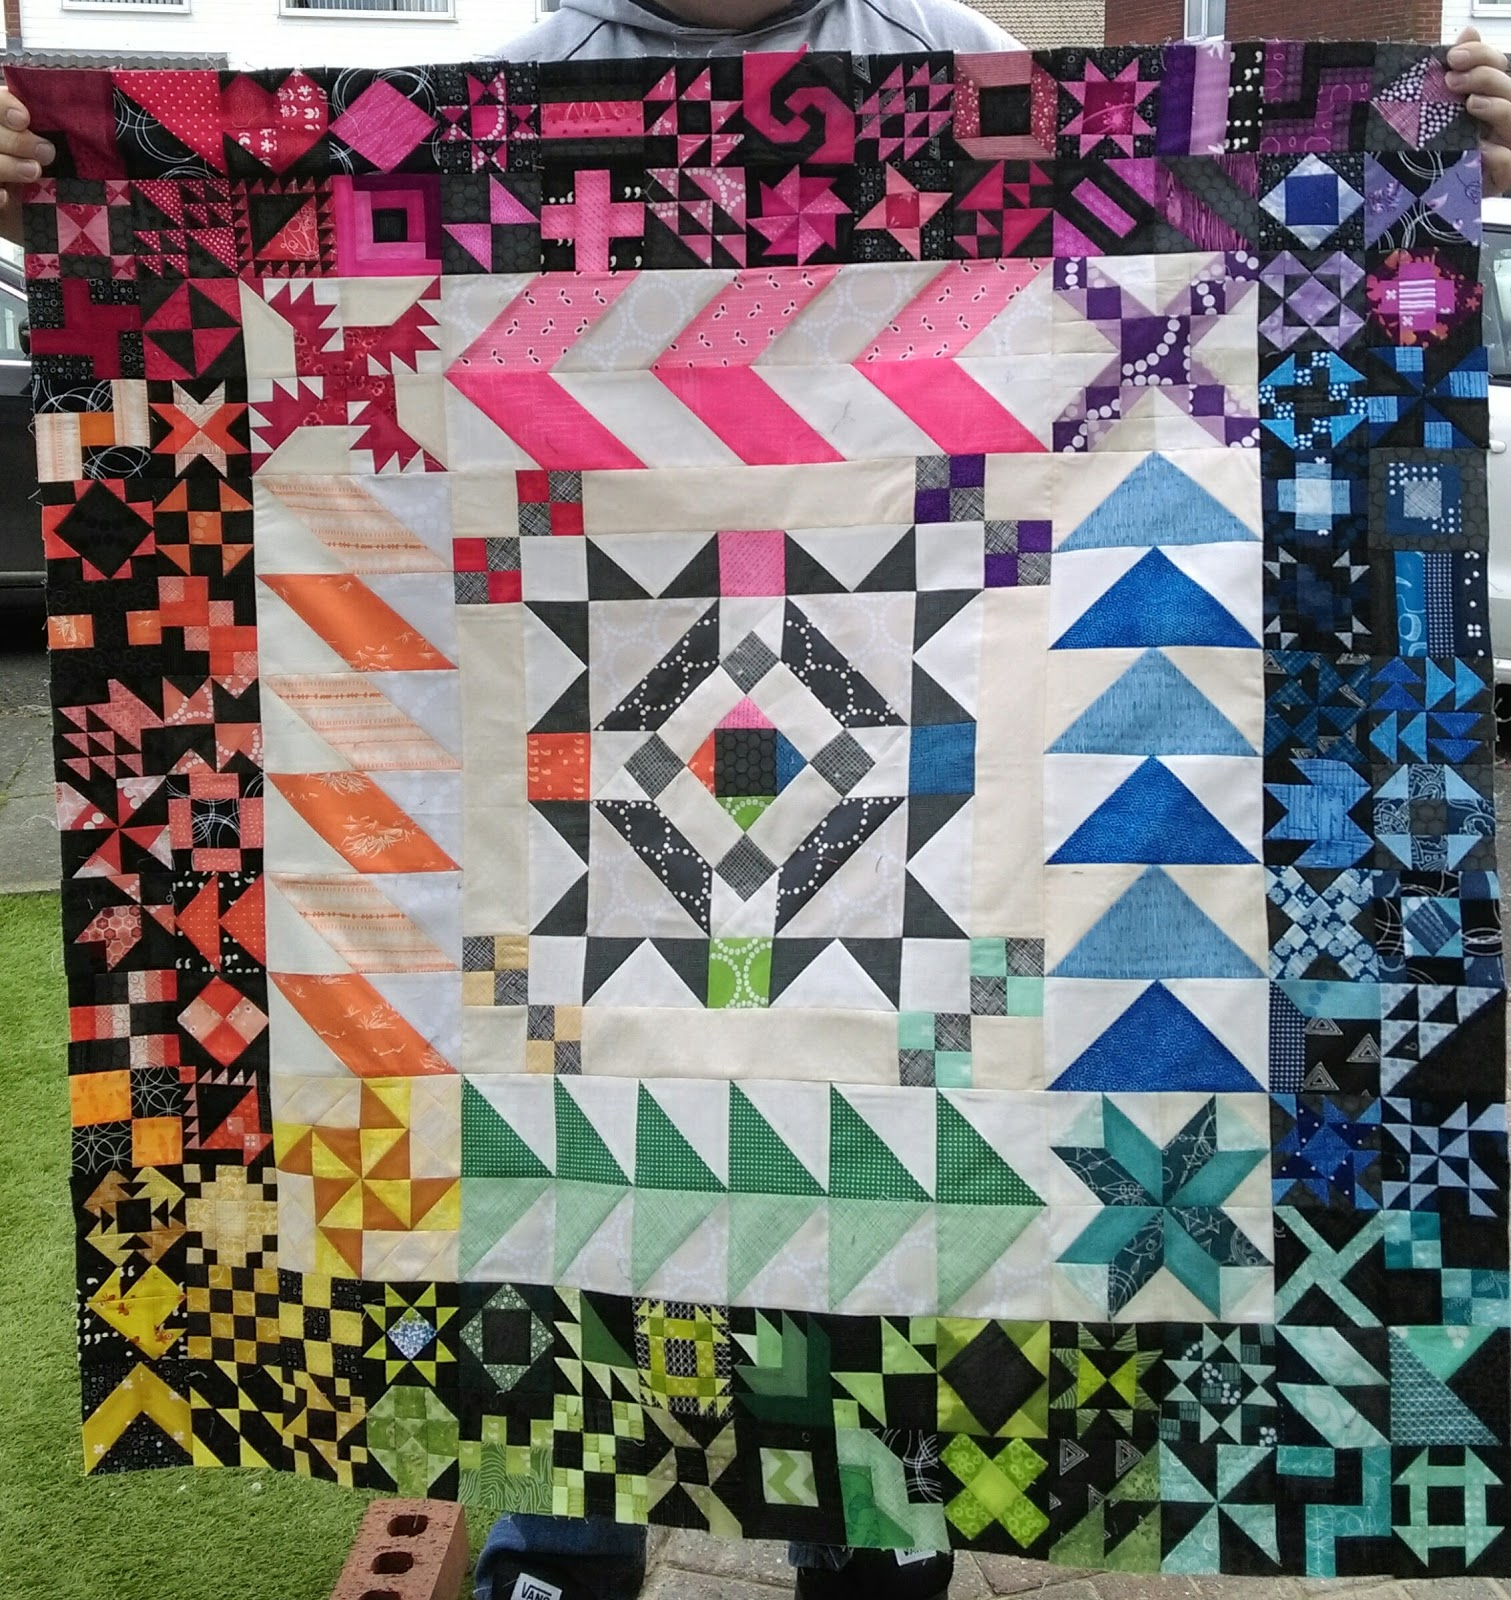 Jennie s Threads: 365 Quilt Challenge [Progress]